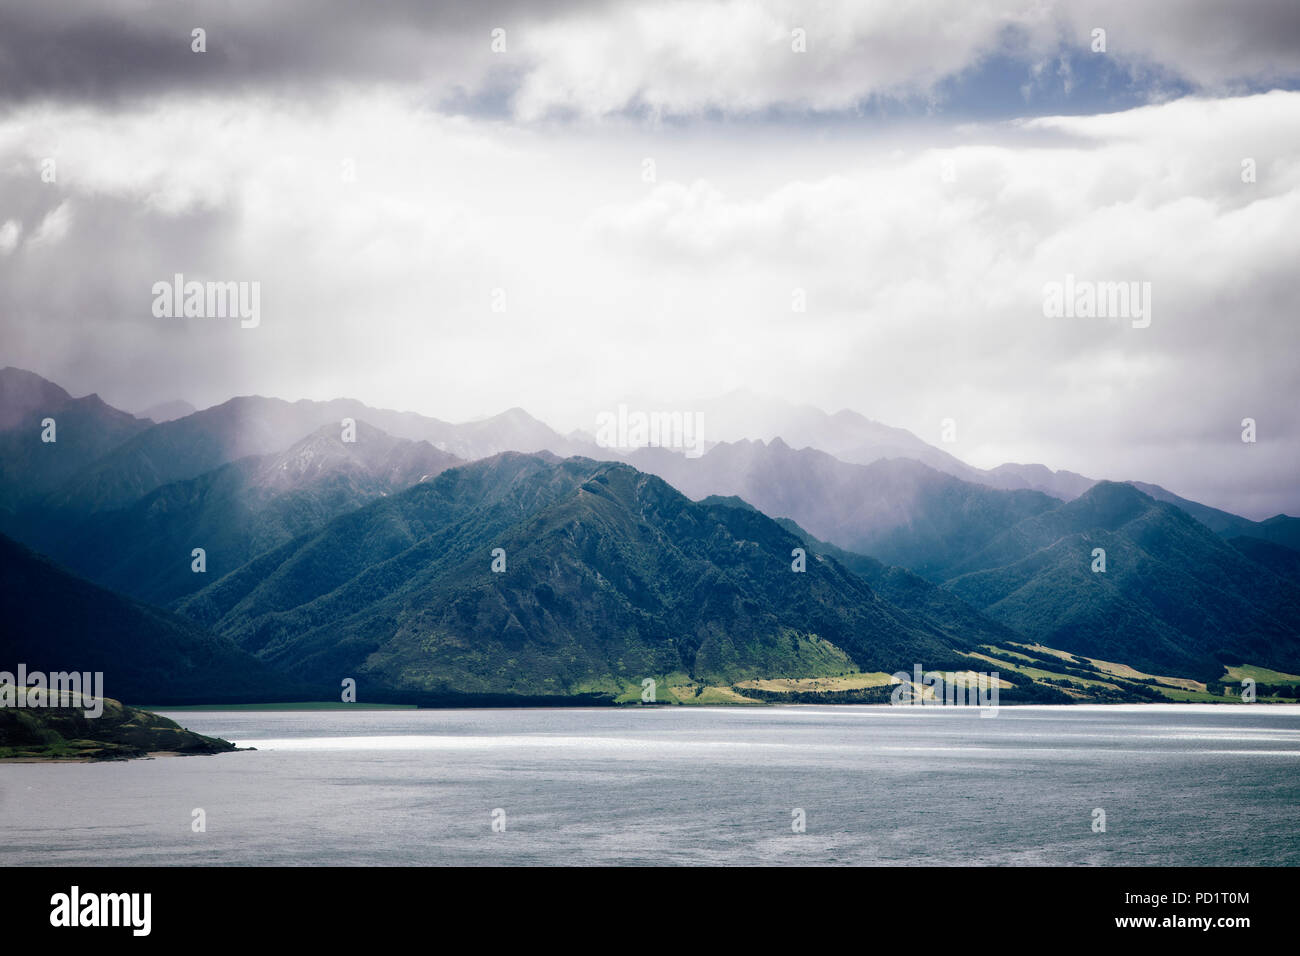 Clouds and sun across Lake Hawea, South Island, New Zealand. - Stock Image